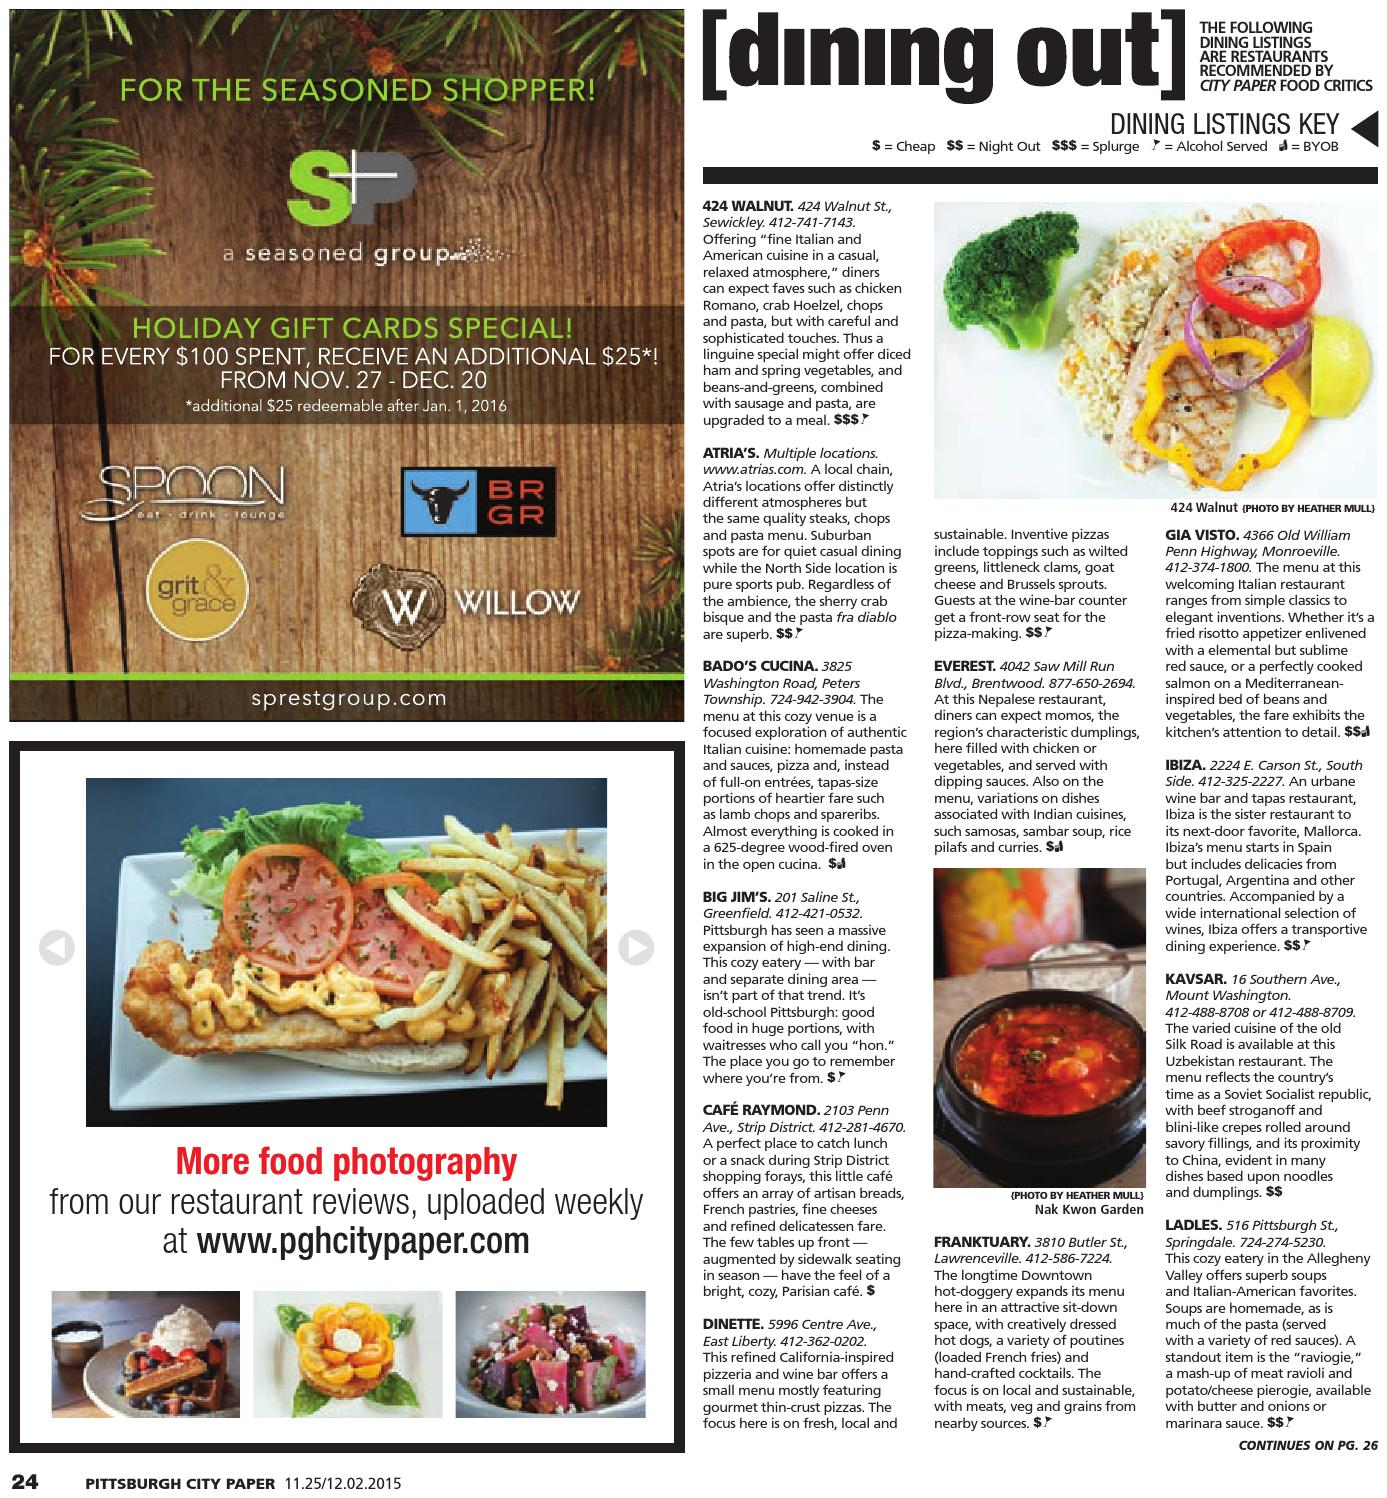 Cucina A Gas Raymond November 25 2015 Pittsburgh City Paper